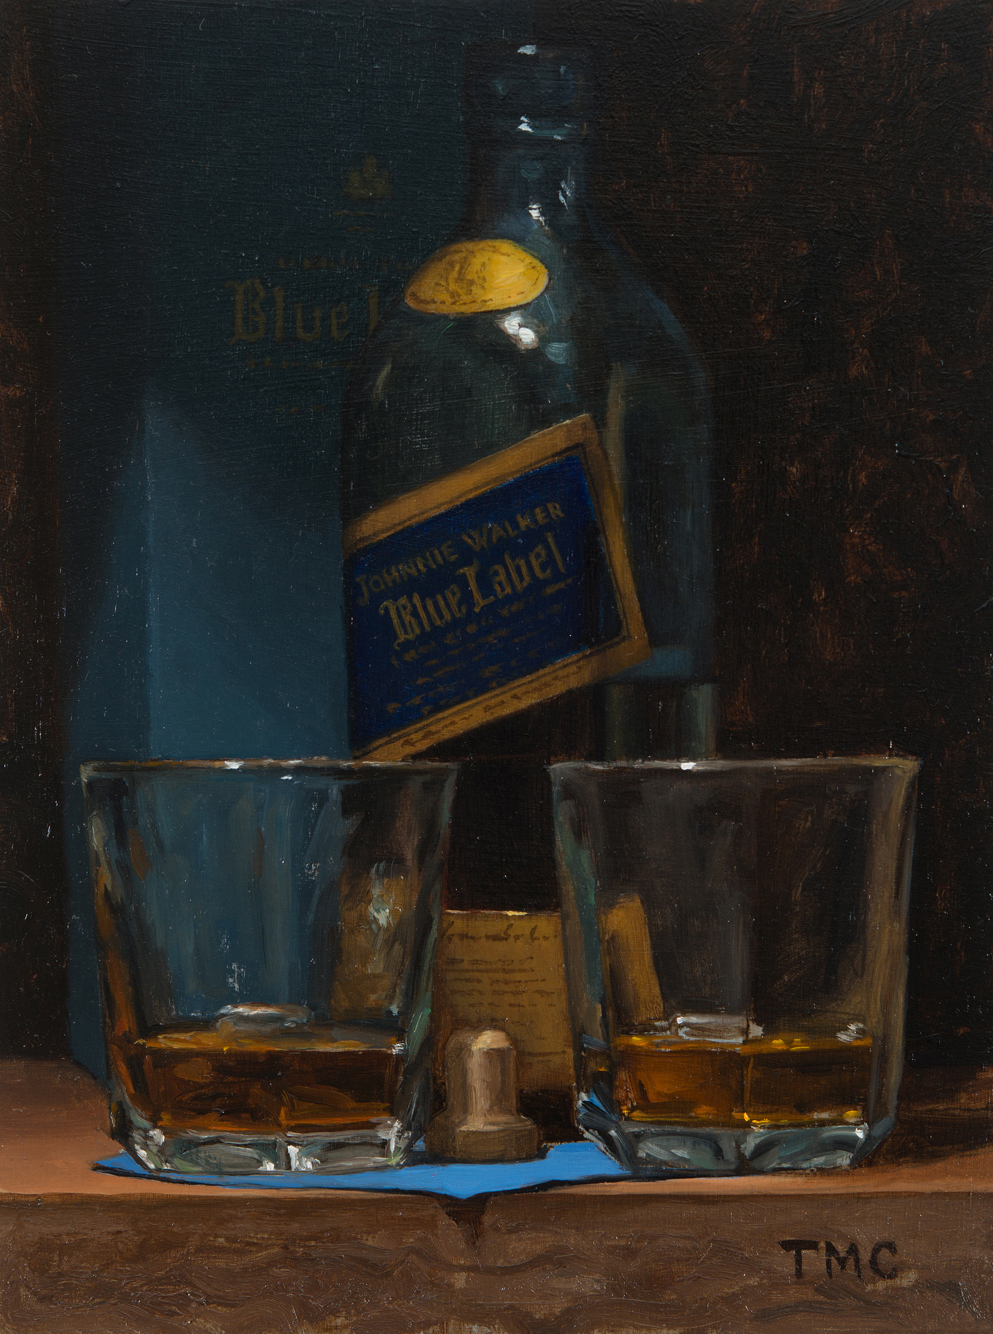 Blue Label by Todd Casey